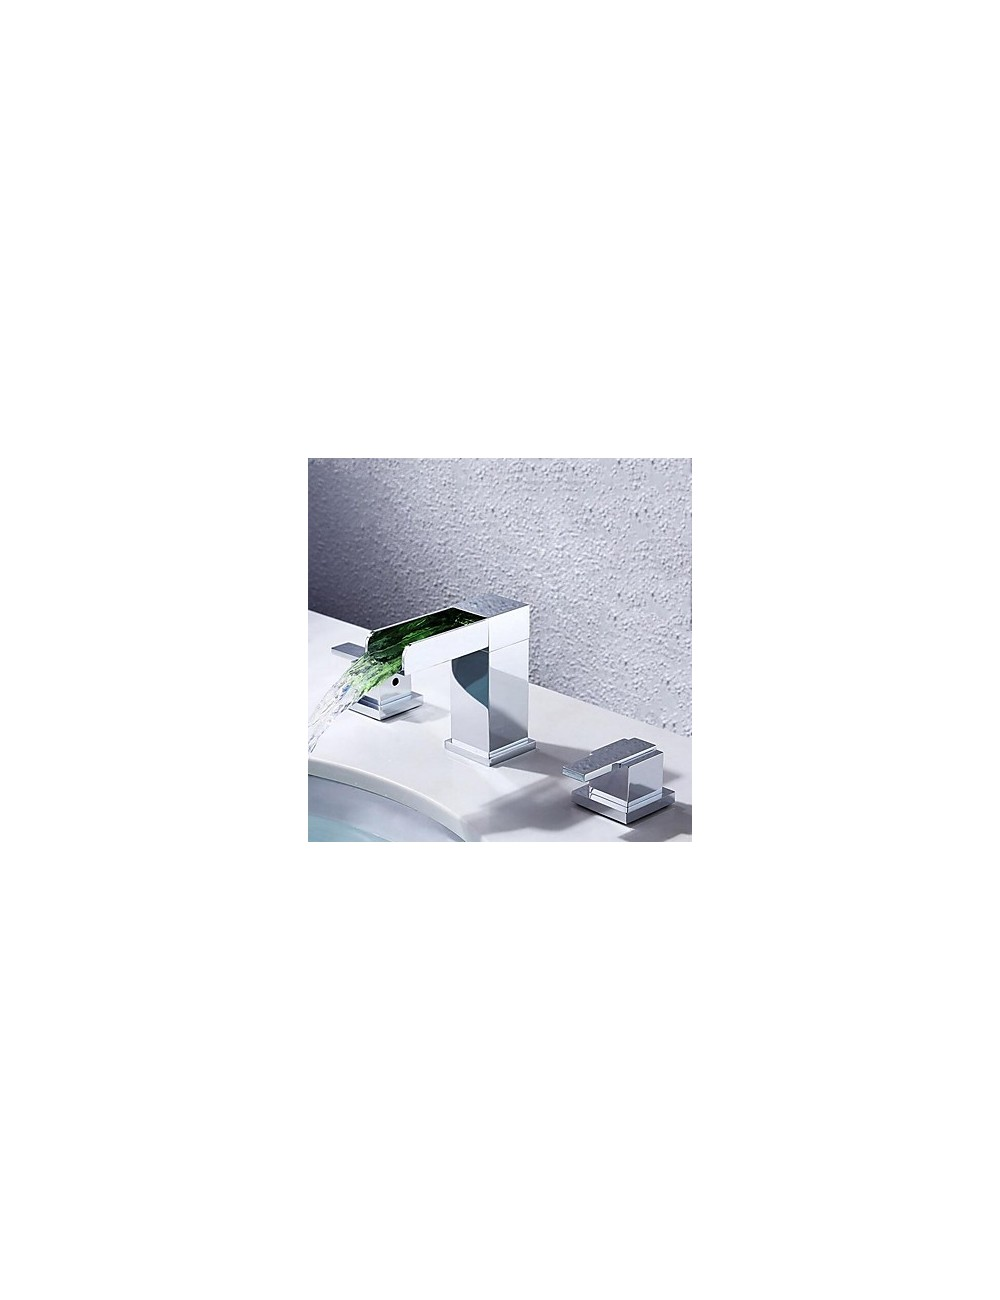 First, mélangeur lavabo Led Cascade Chrome